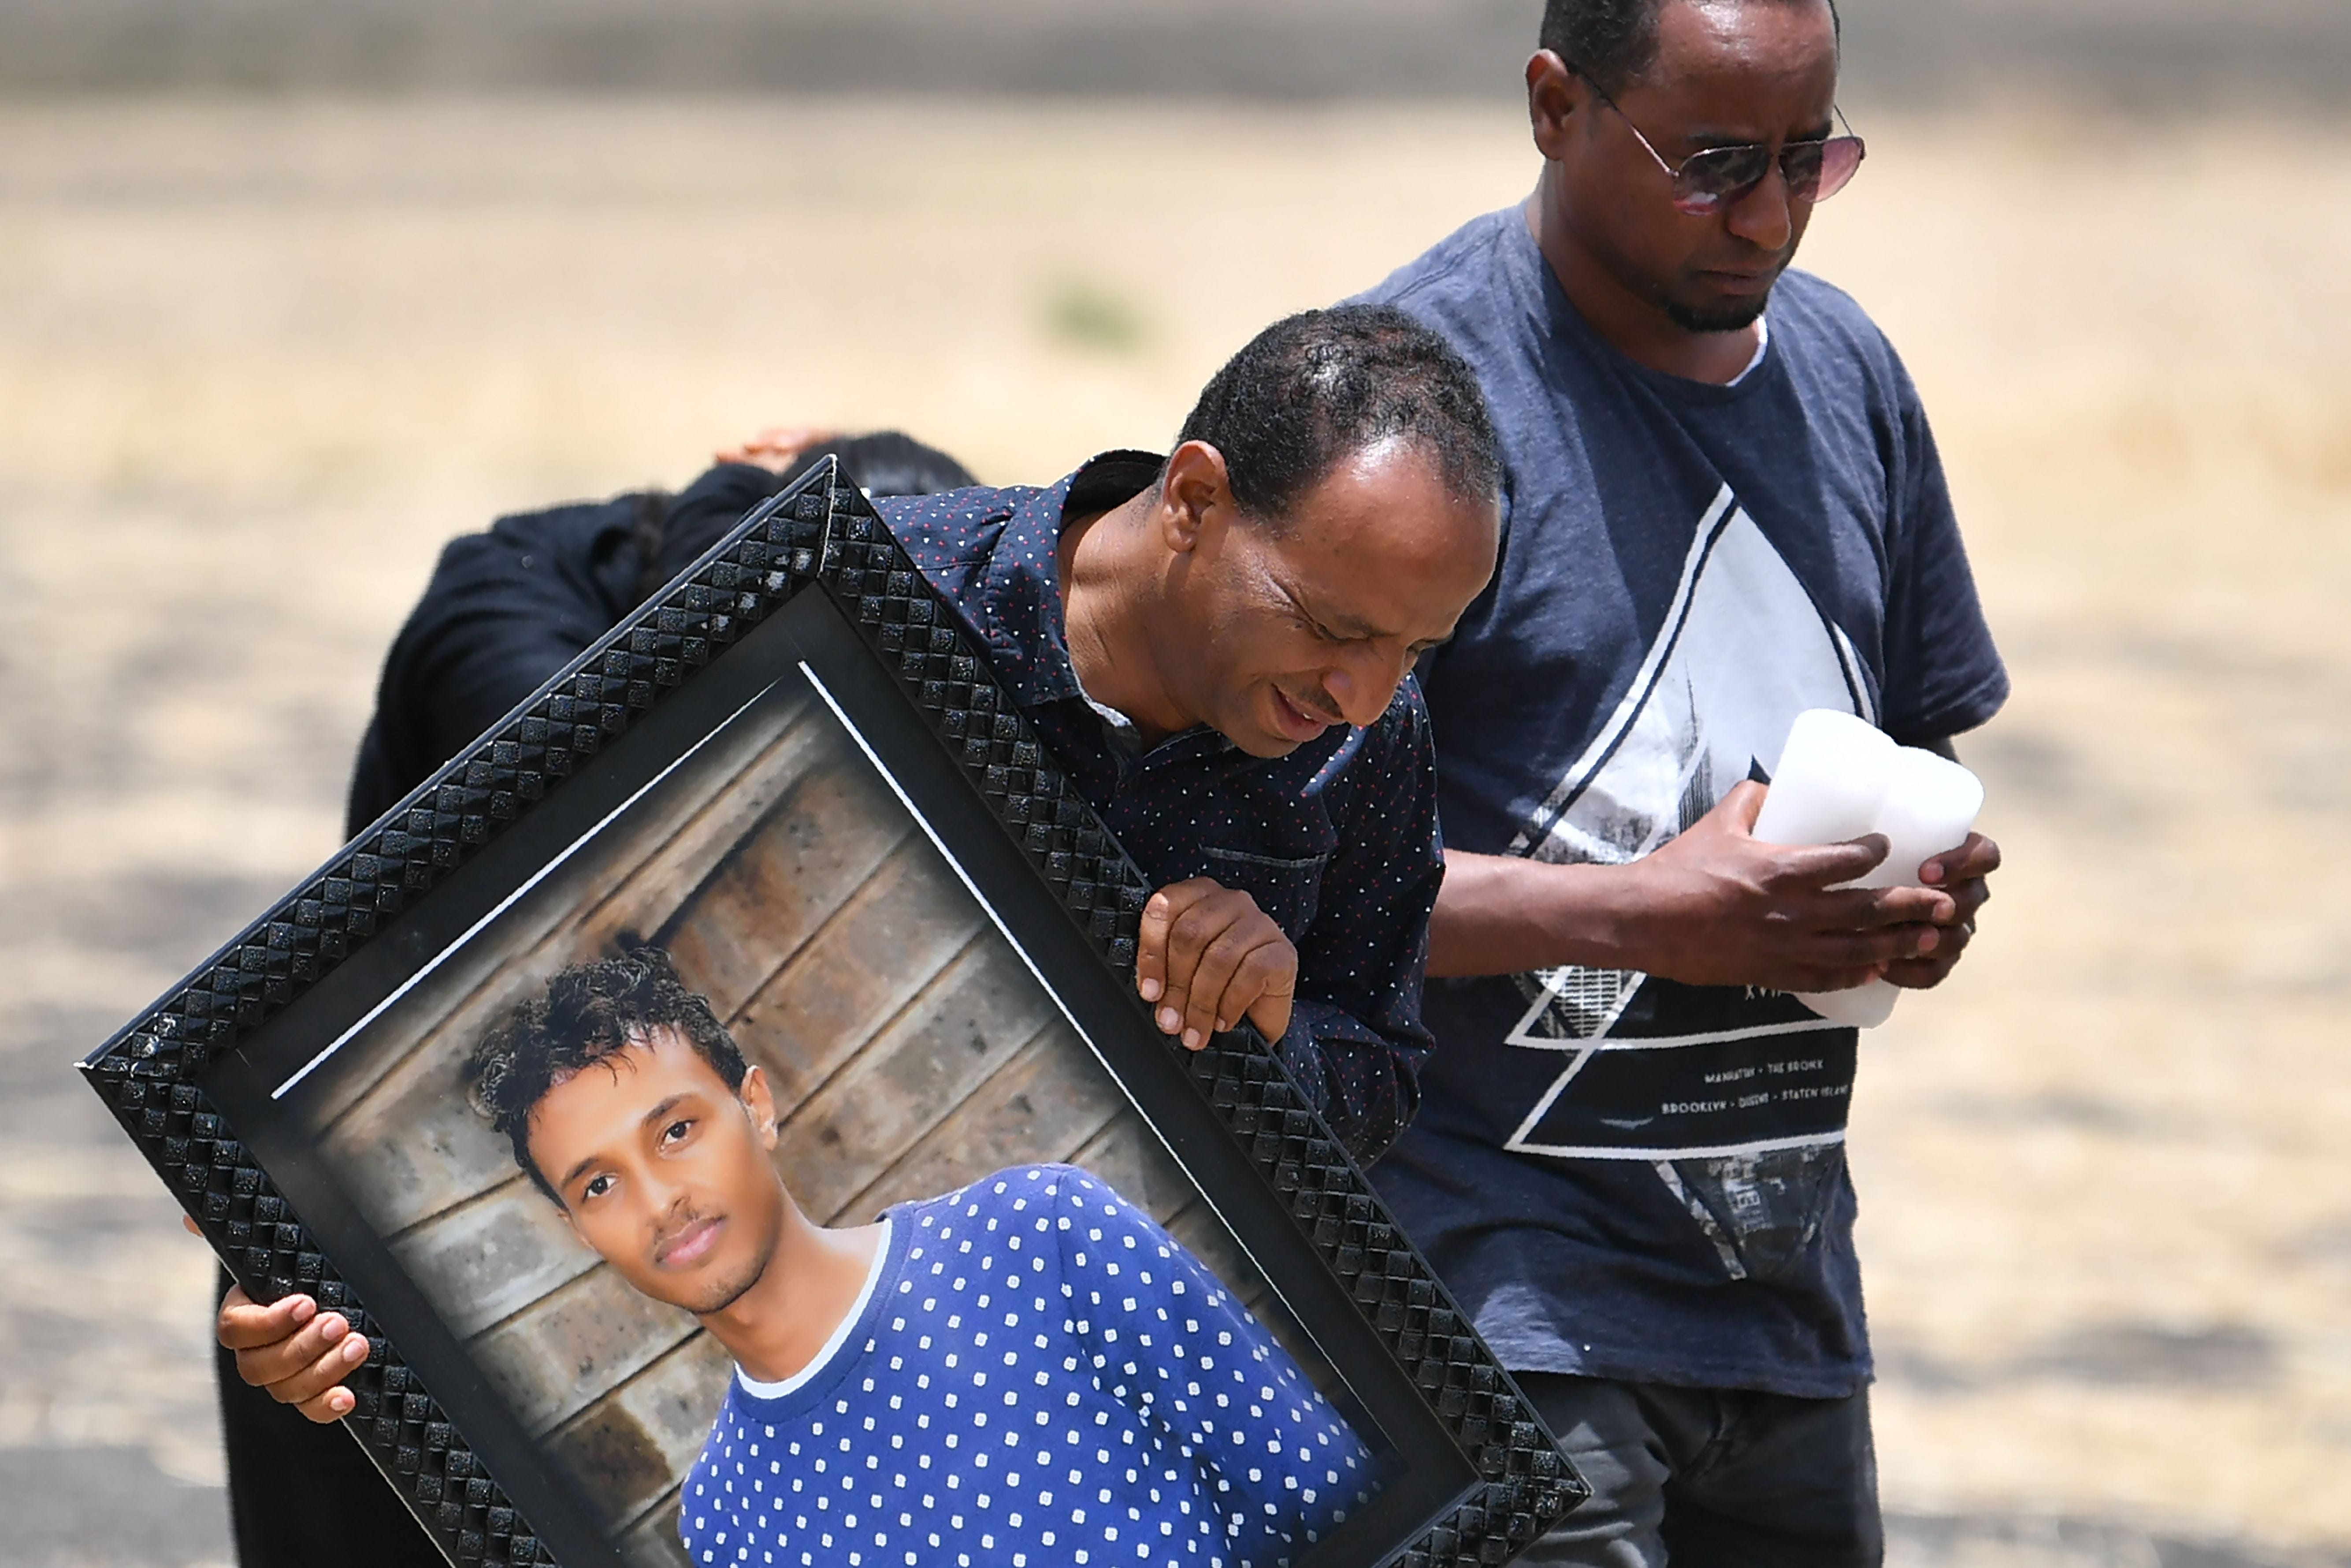 A grieving relative carries the picture of a victim at the crash site of the Ethiopian Airlines operated Boeing 737 MAX aircraft, at Hama Quntushele village in Oromia region, on March 14, 2019.